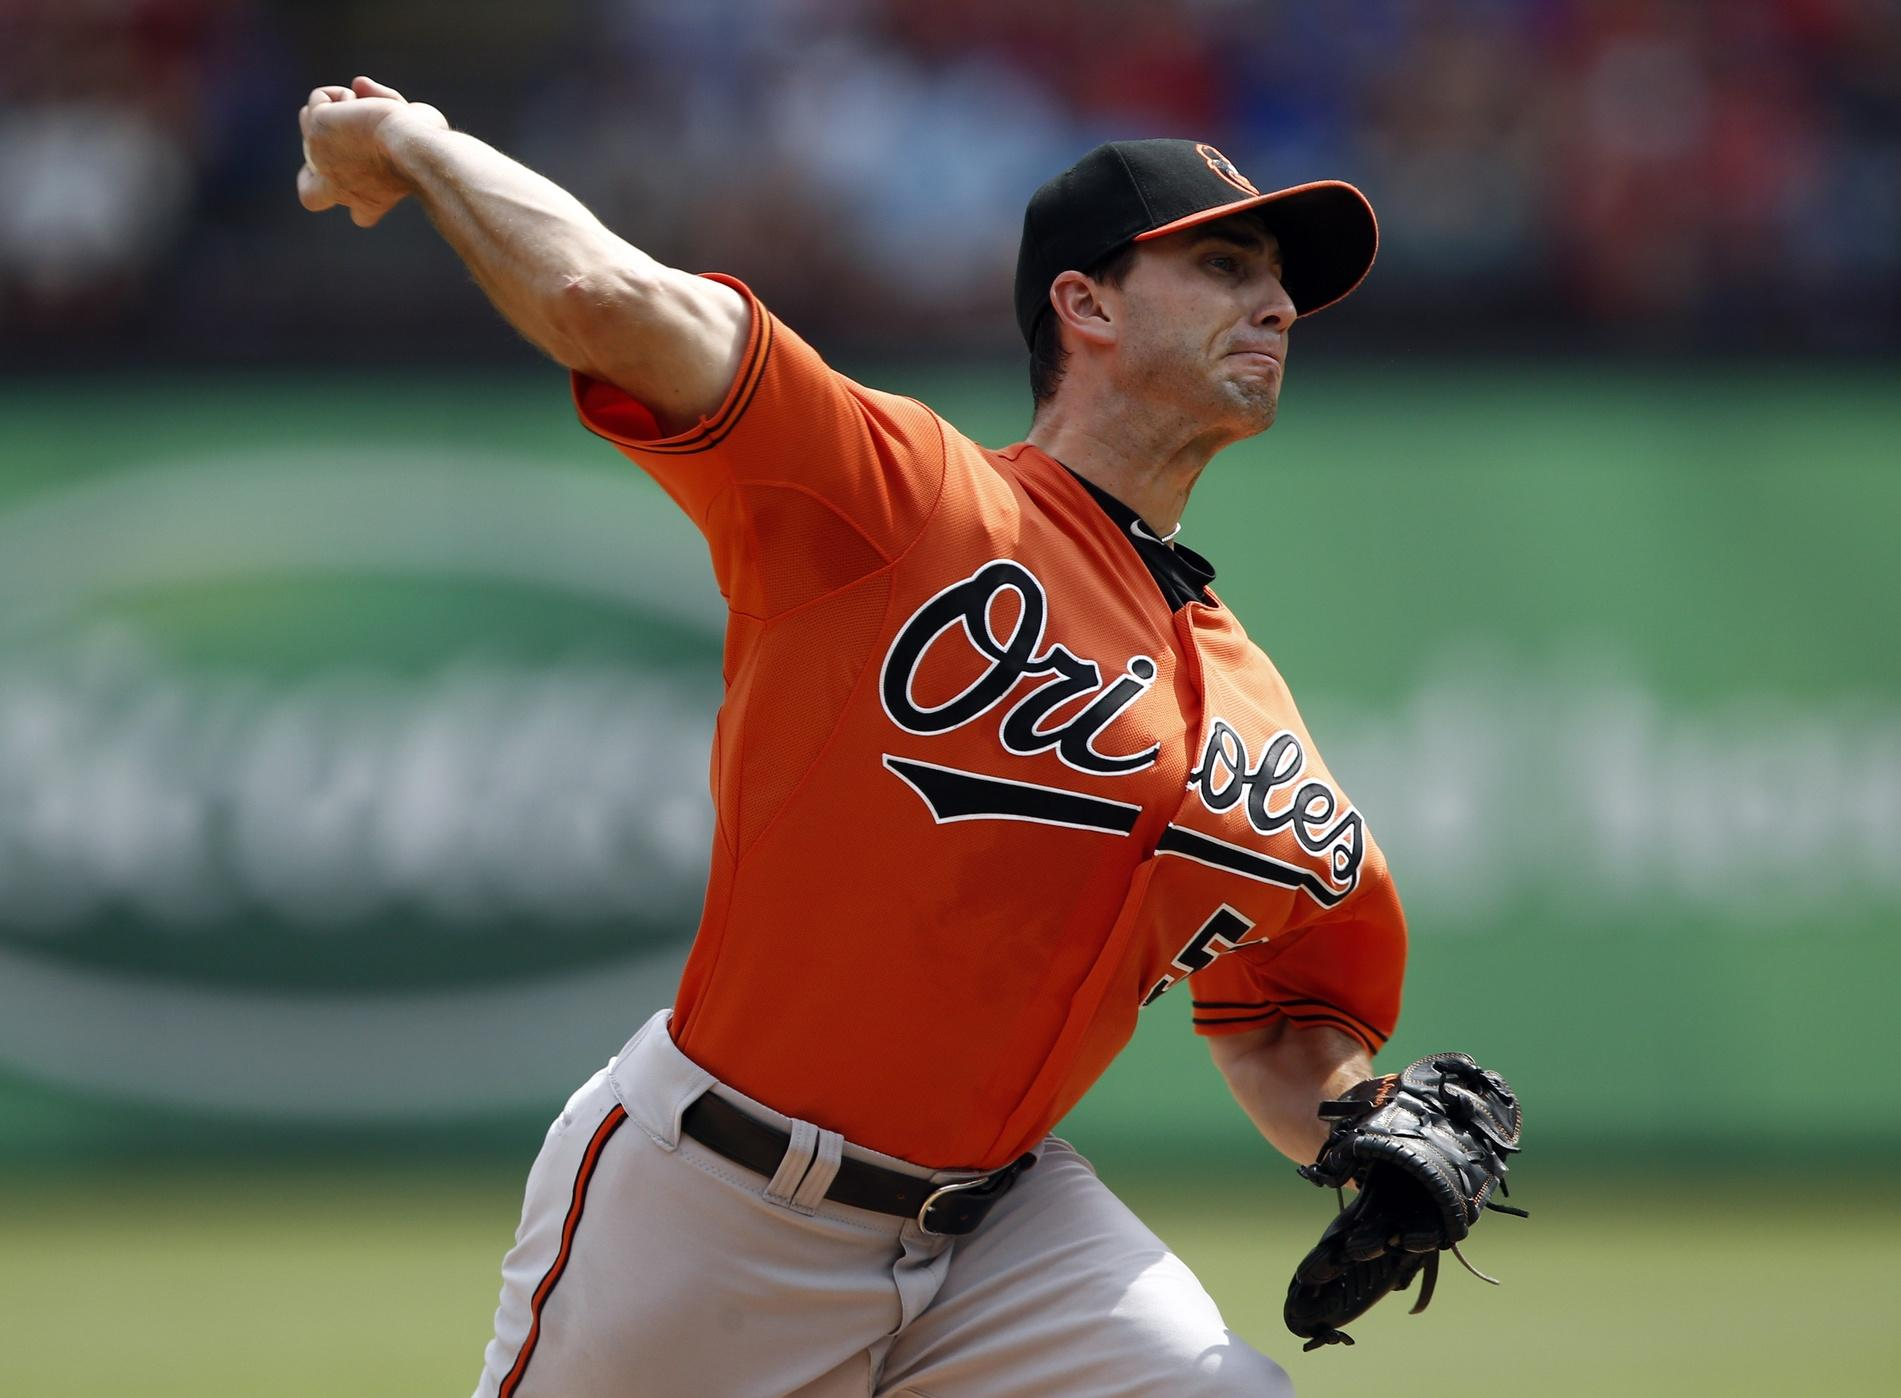 Gonzalez hopes rest will allow him to pitch this season